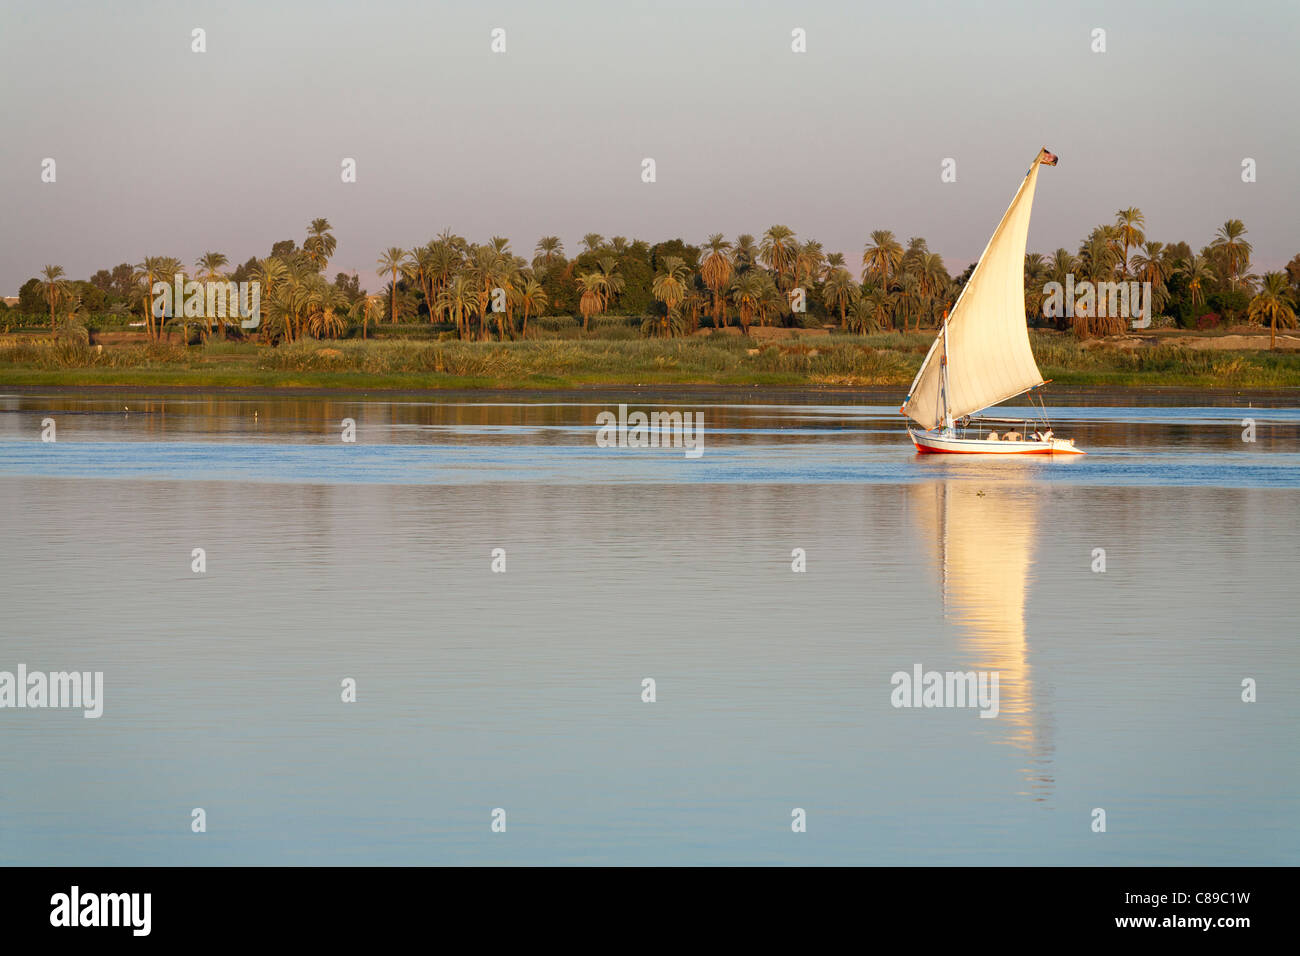 Nile felluca sailing right to left reflected on very calm water with palm and tree lined Nile bank behind, Egypt - Stock Image